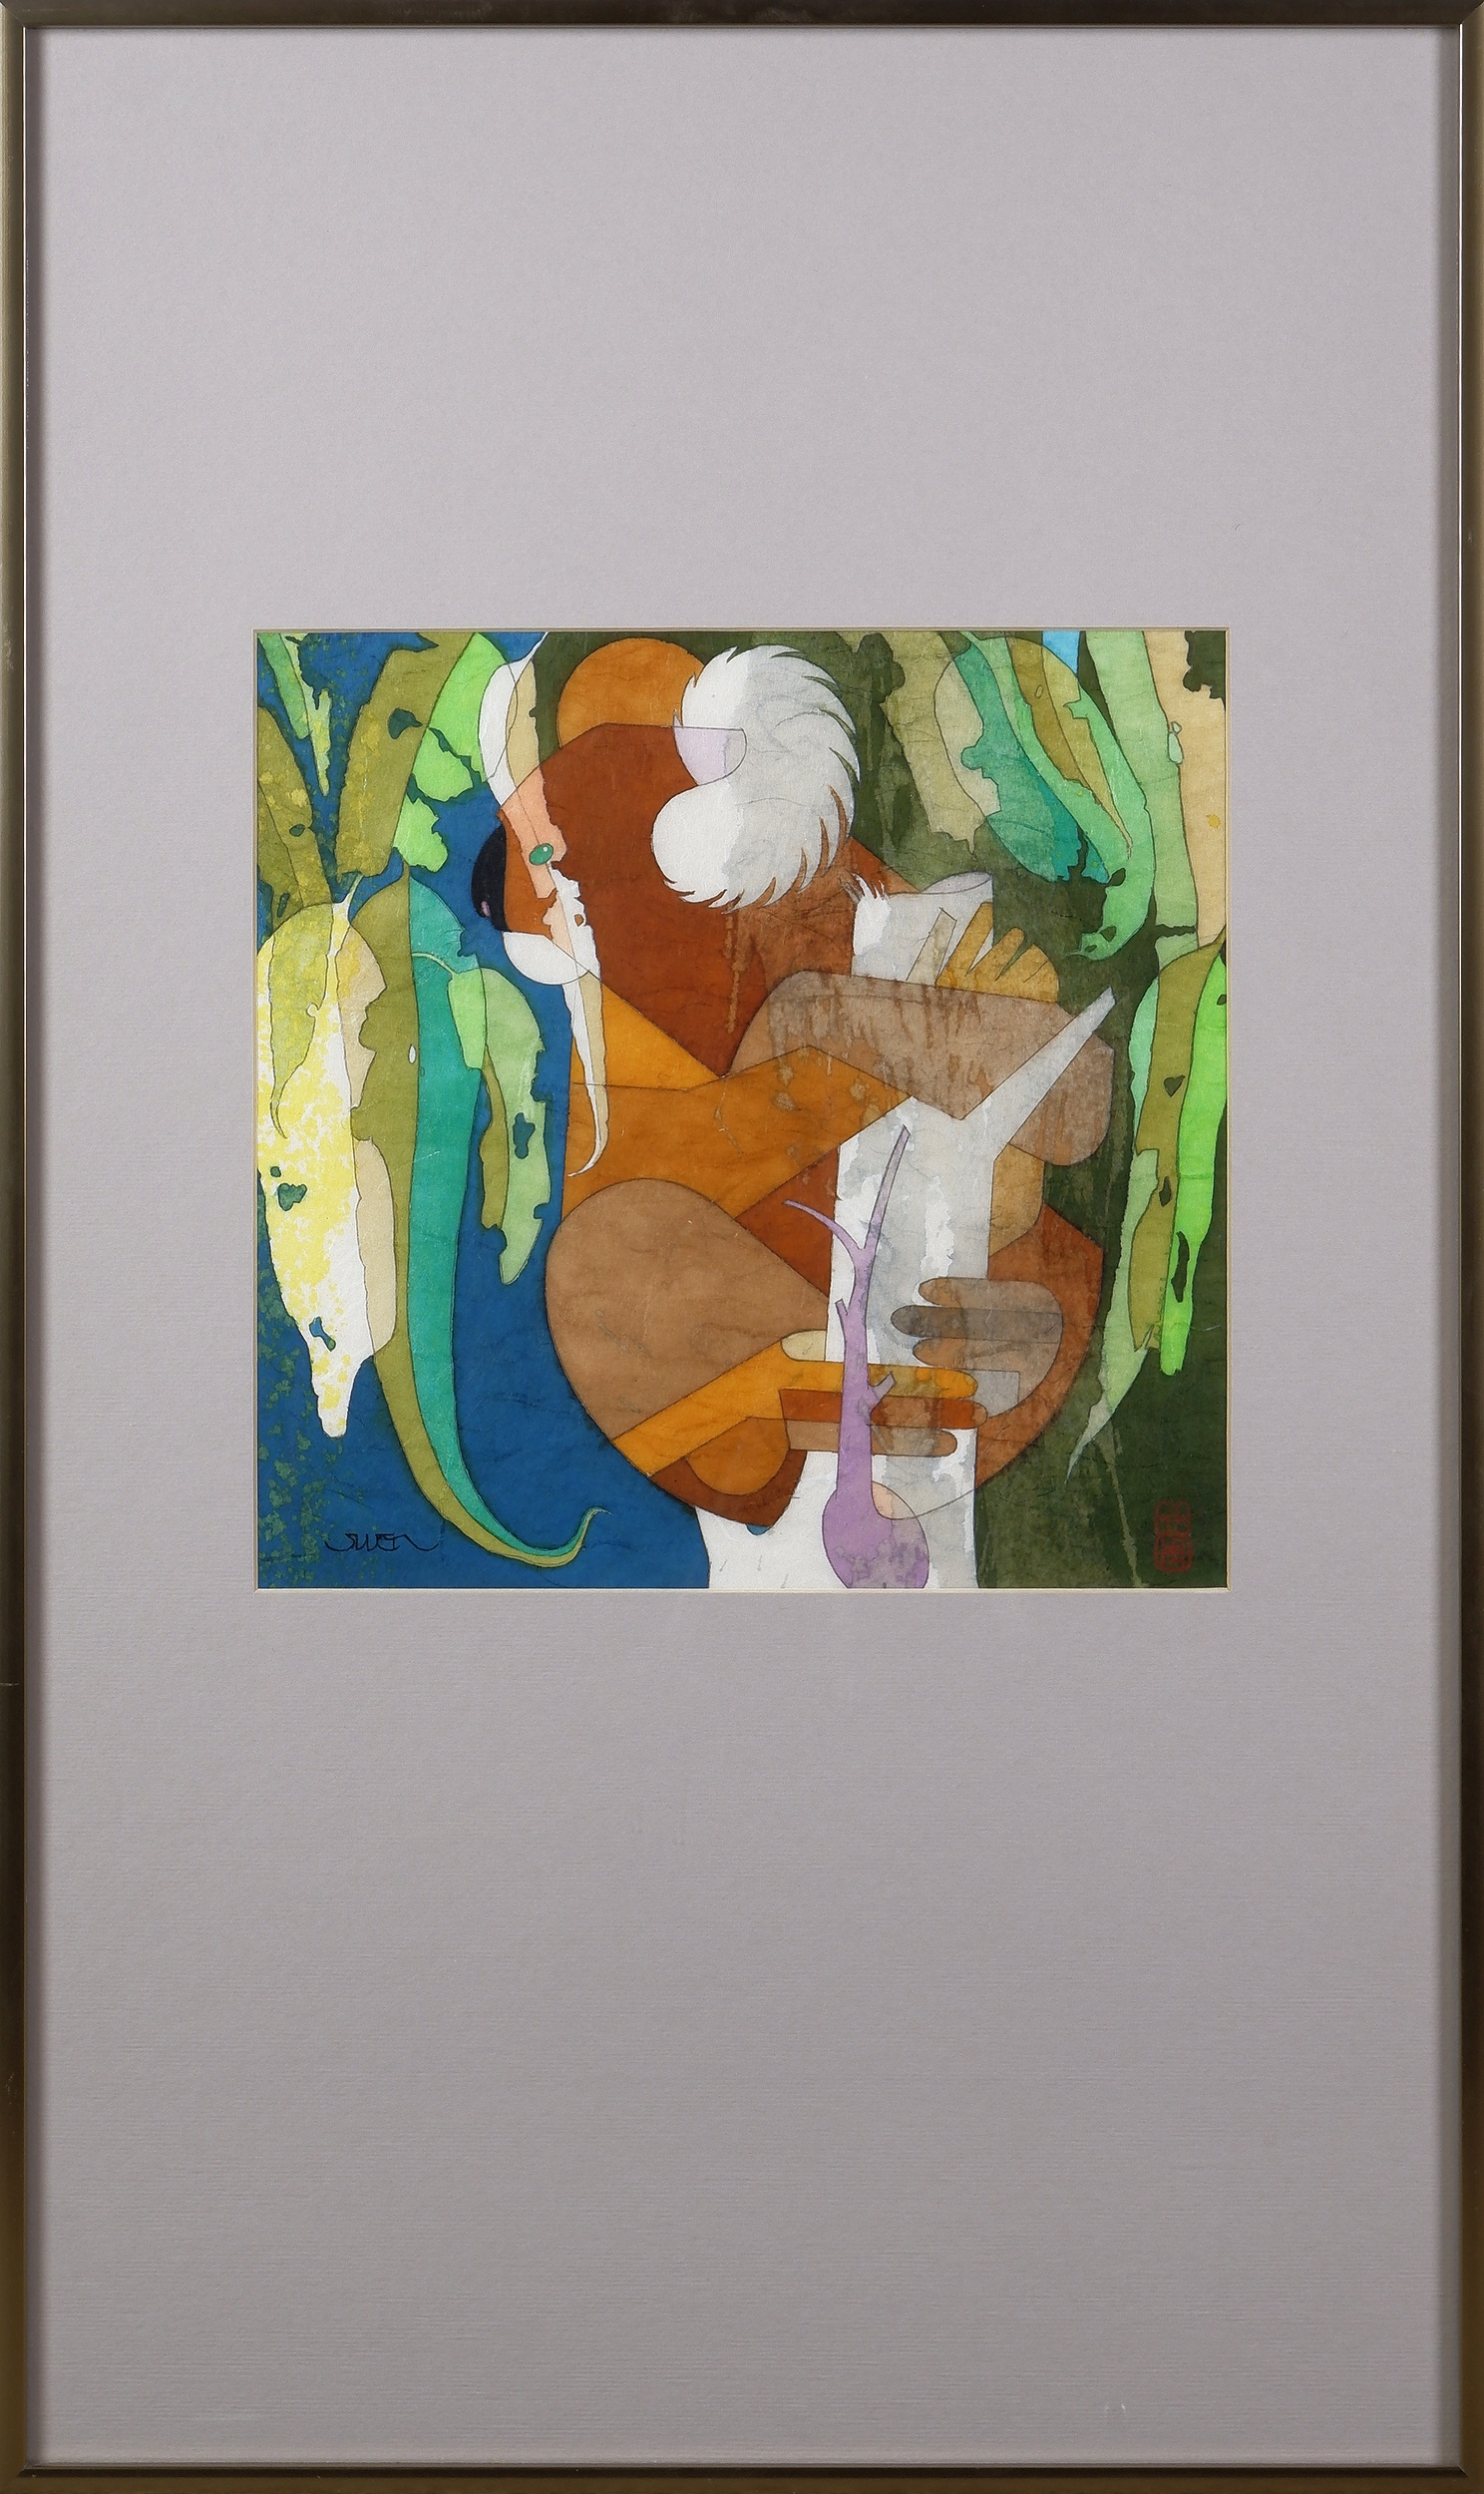 'Cornel Swen (born 1930), Gumtip Gastro-Gnome 1993, Wax-Resisted Dye Painting on Japanese Washi Paper'